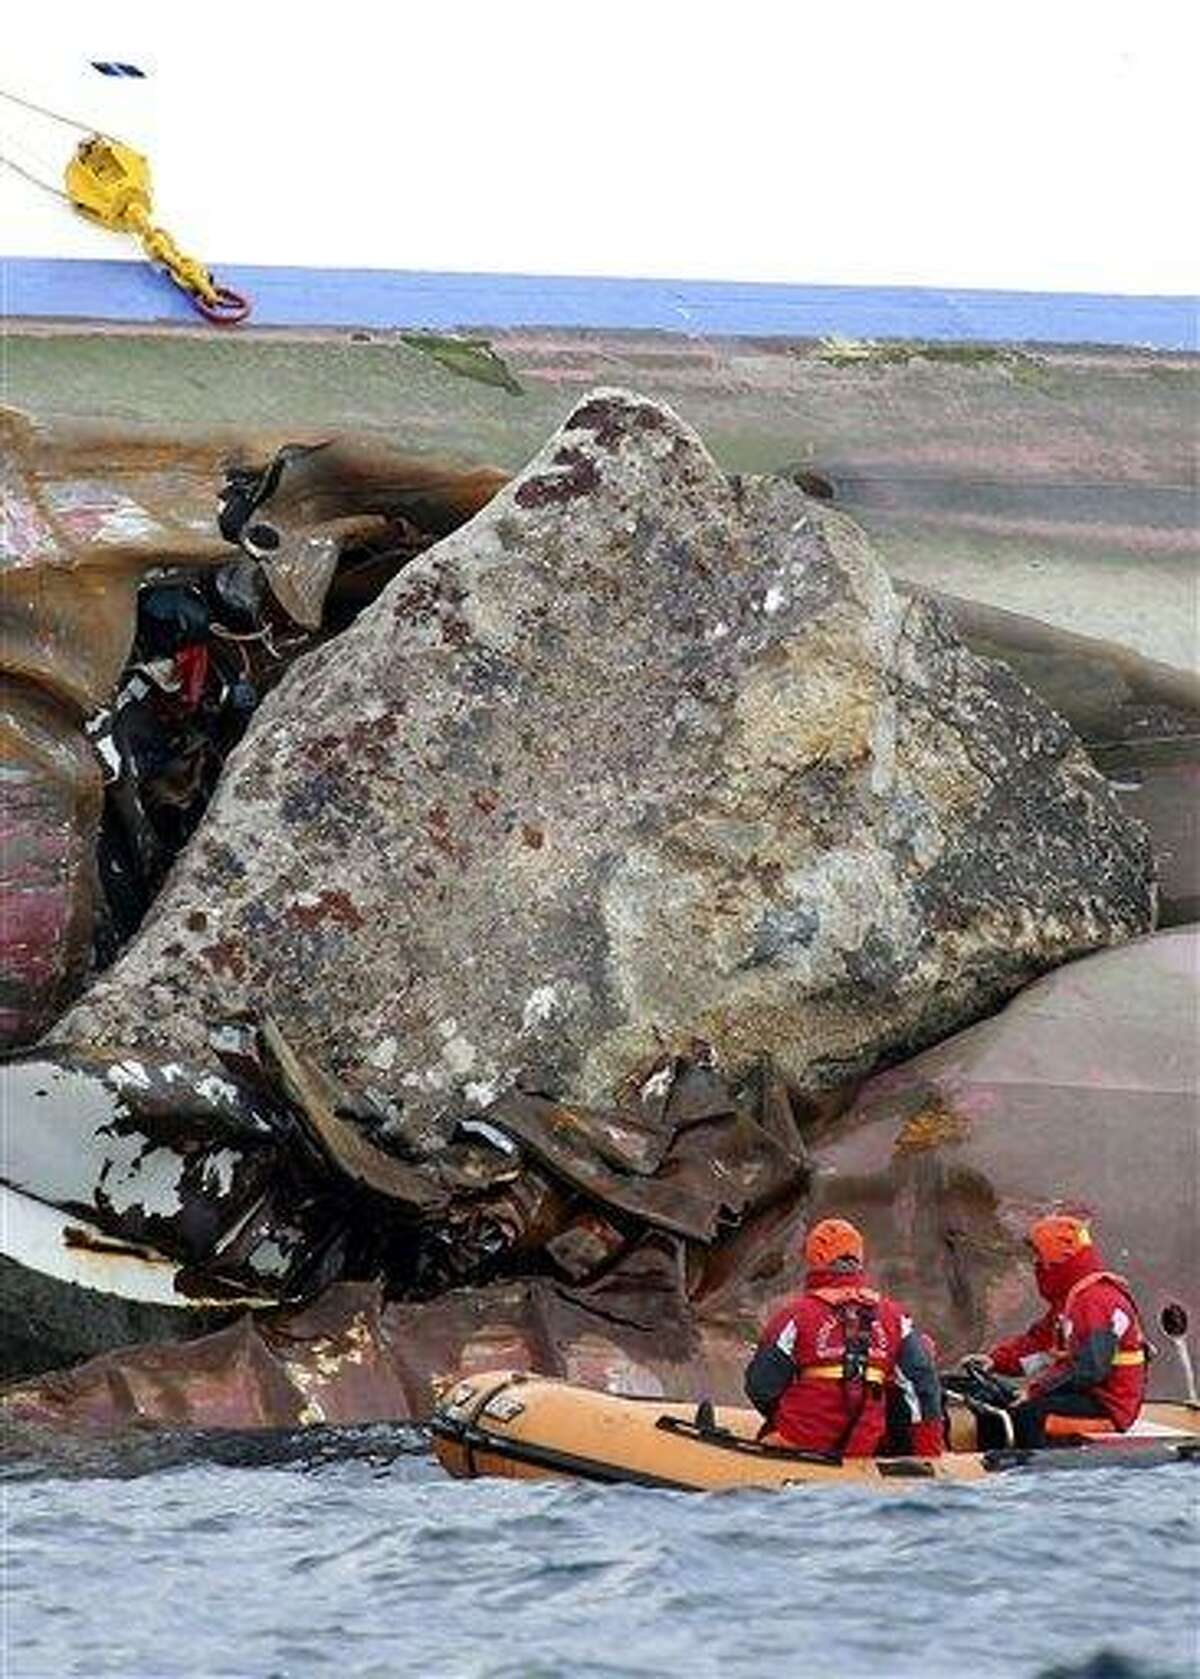 Firefighters on a dinghy look at a rock emerging from the side of the luxury cruise ship Costa Concordia, the day after it ran aground off the Tuscan island of Giglio, Italy, Sunday. Associated Press